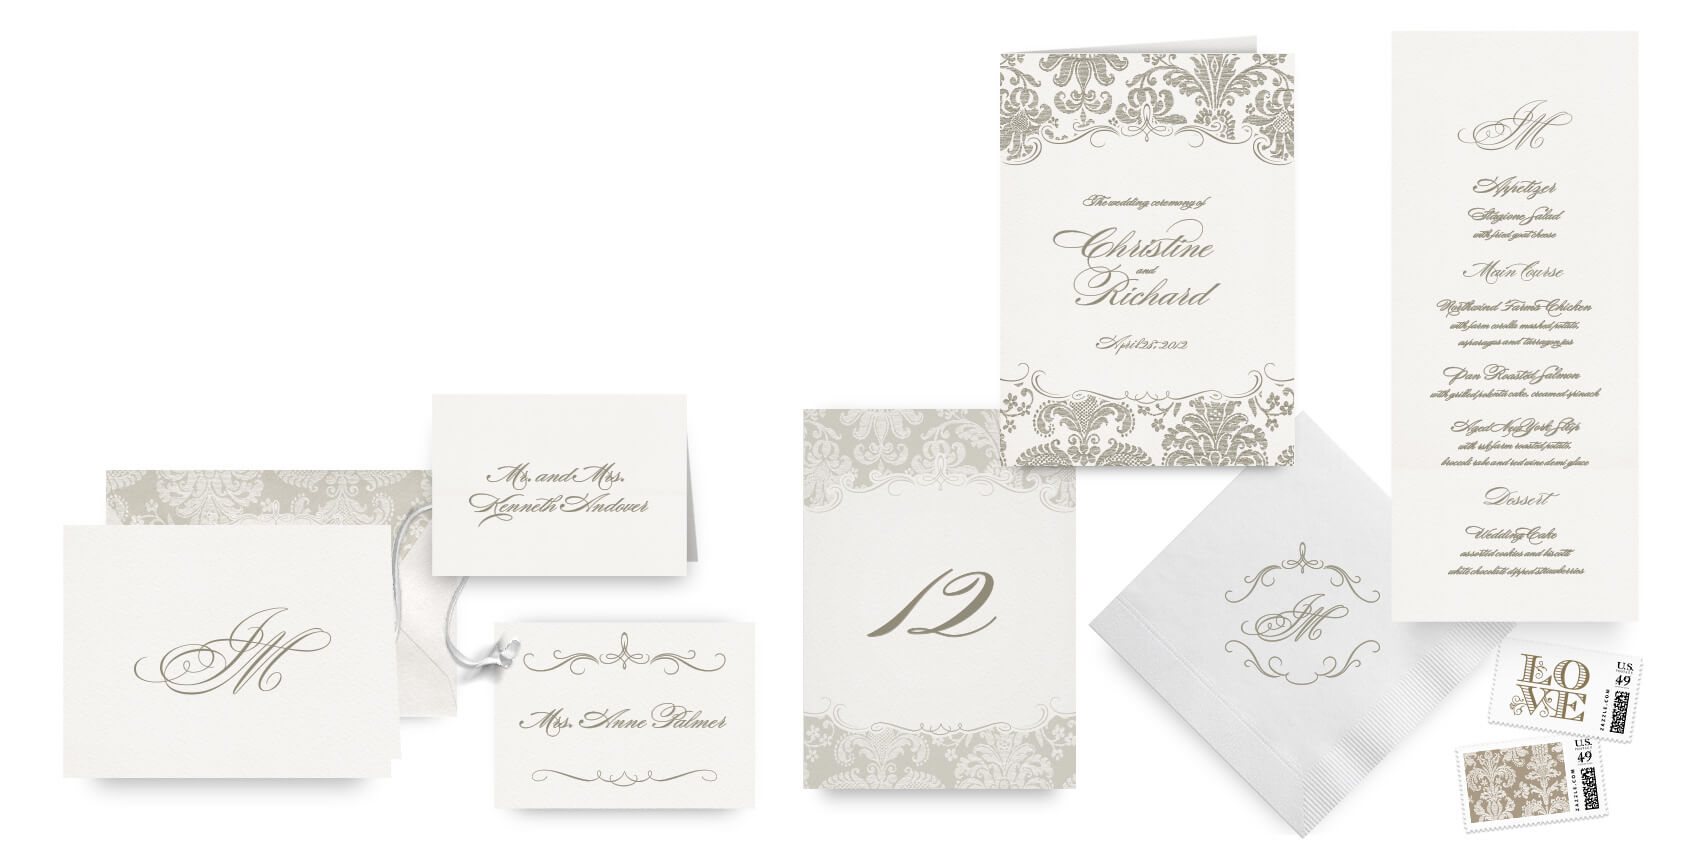 Ornate damask menus, programs and wedding accessoriesmask letterpress wedd